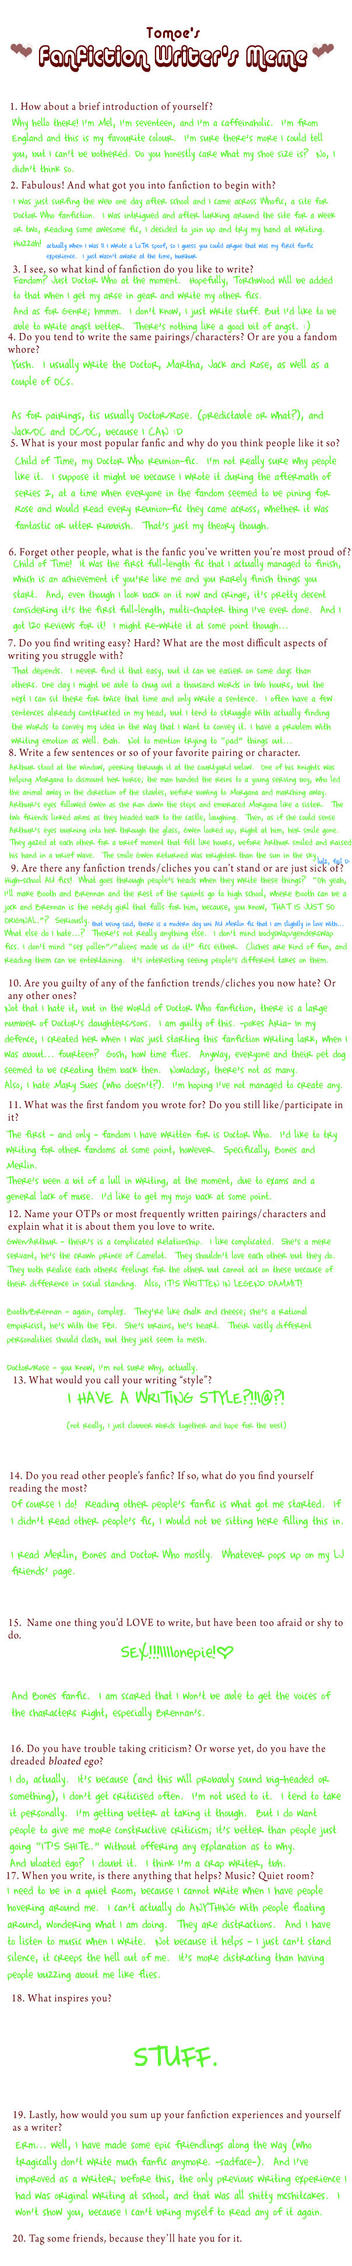 Fanfiction Writer's Meme by 30-Seconds-From-Mars